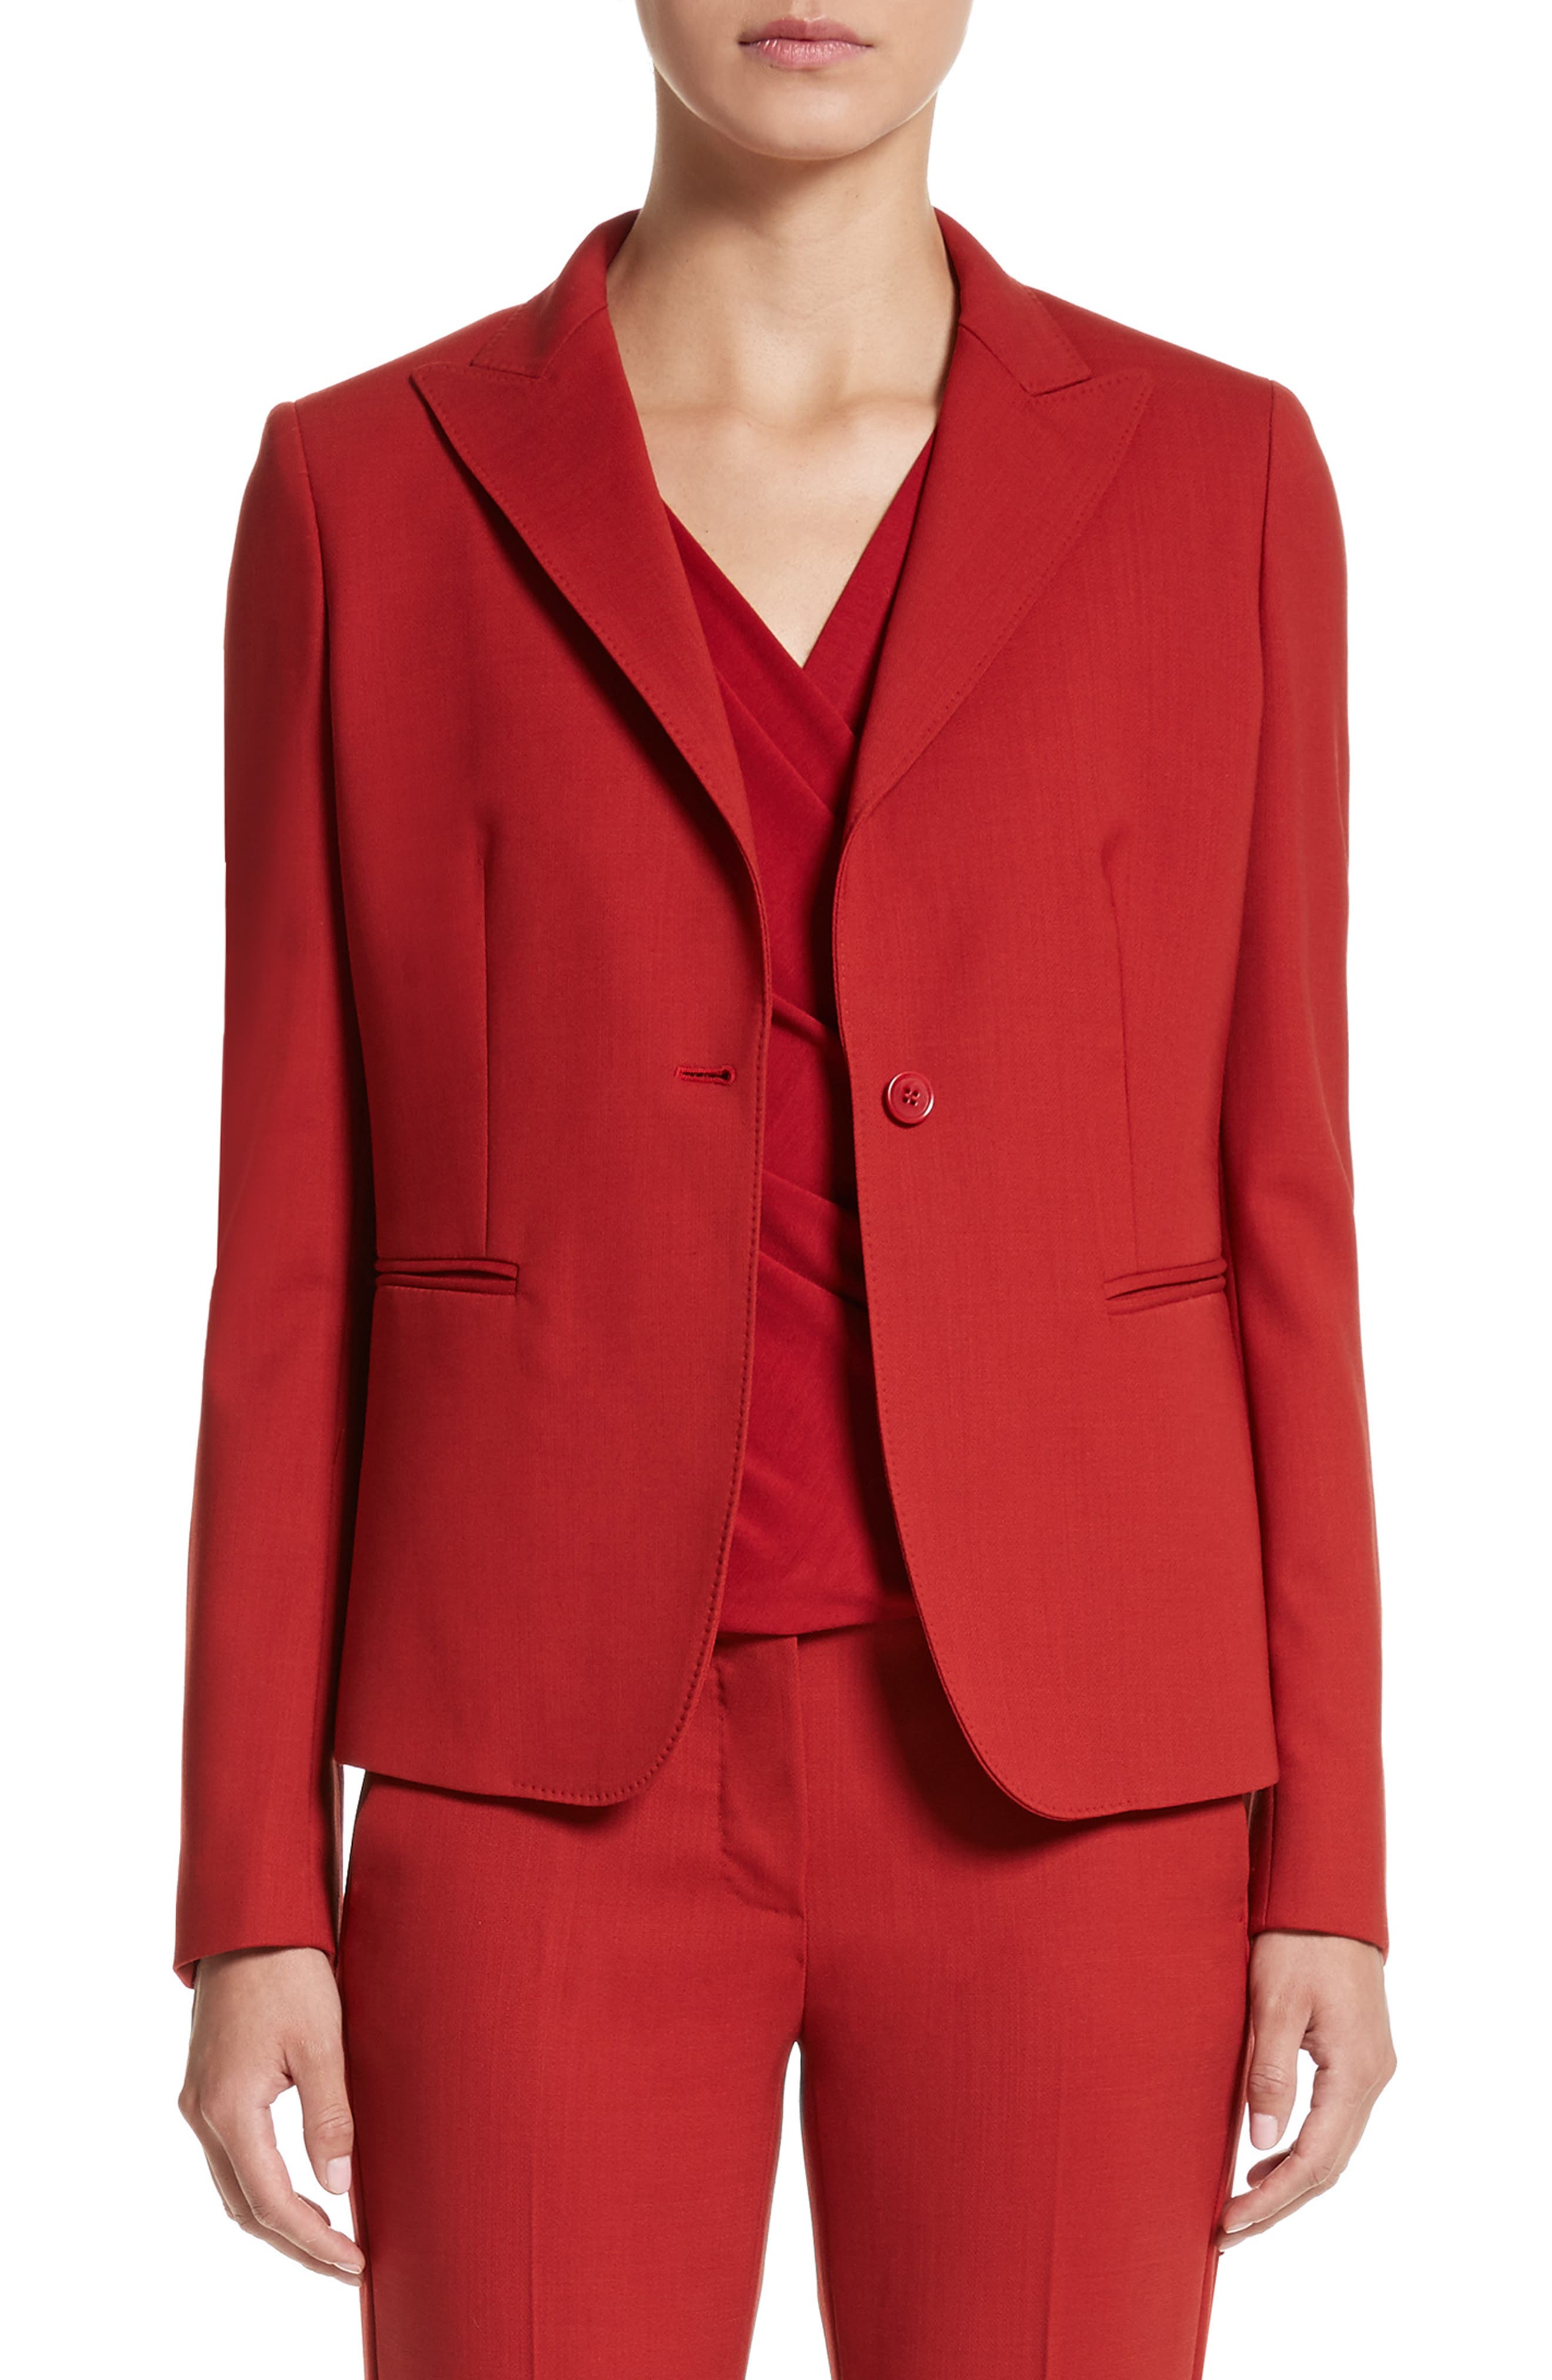 Umile Stretch Wool Jacket,                         Main,                         color, 614